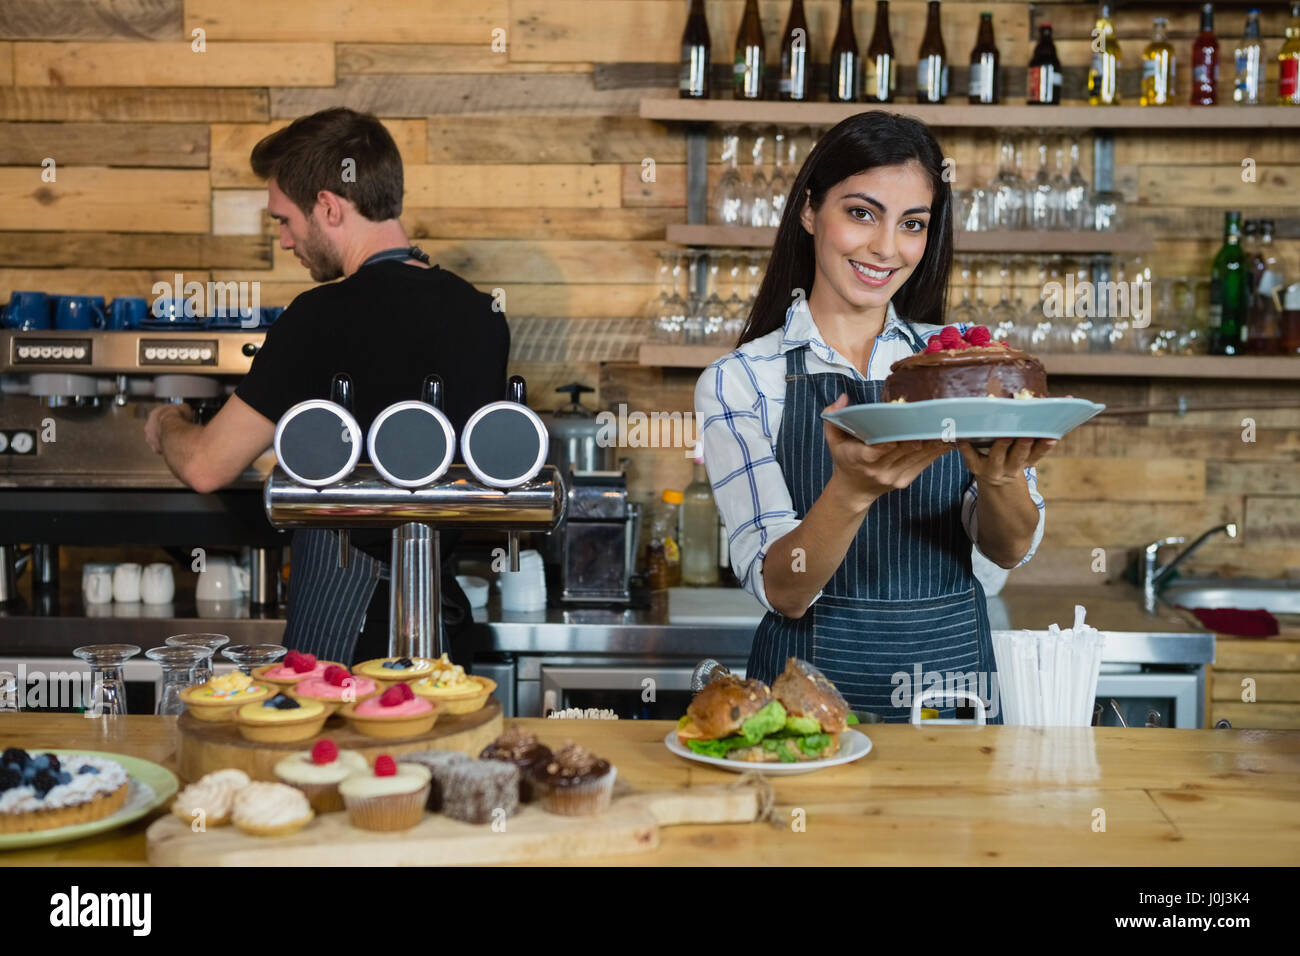 Portrait of smiling waitress holding a chocolate cake at counter in café Stock Photo